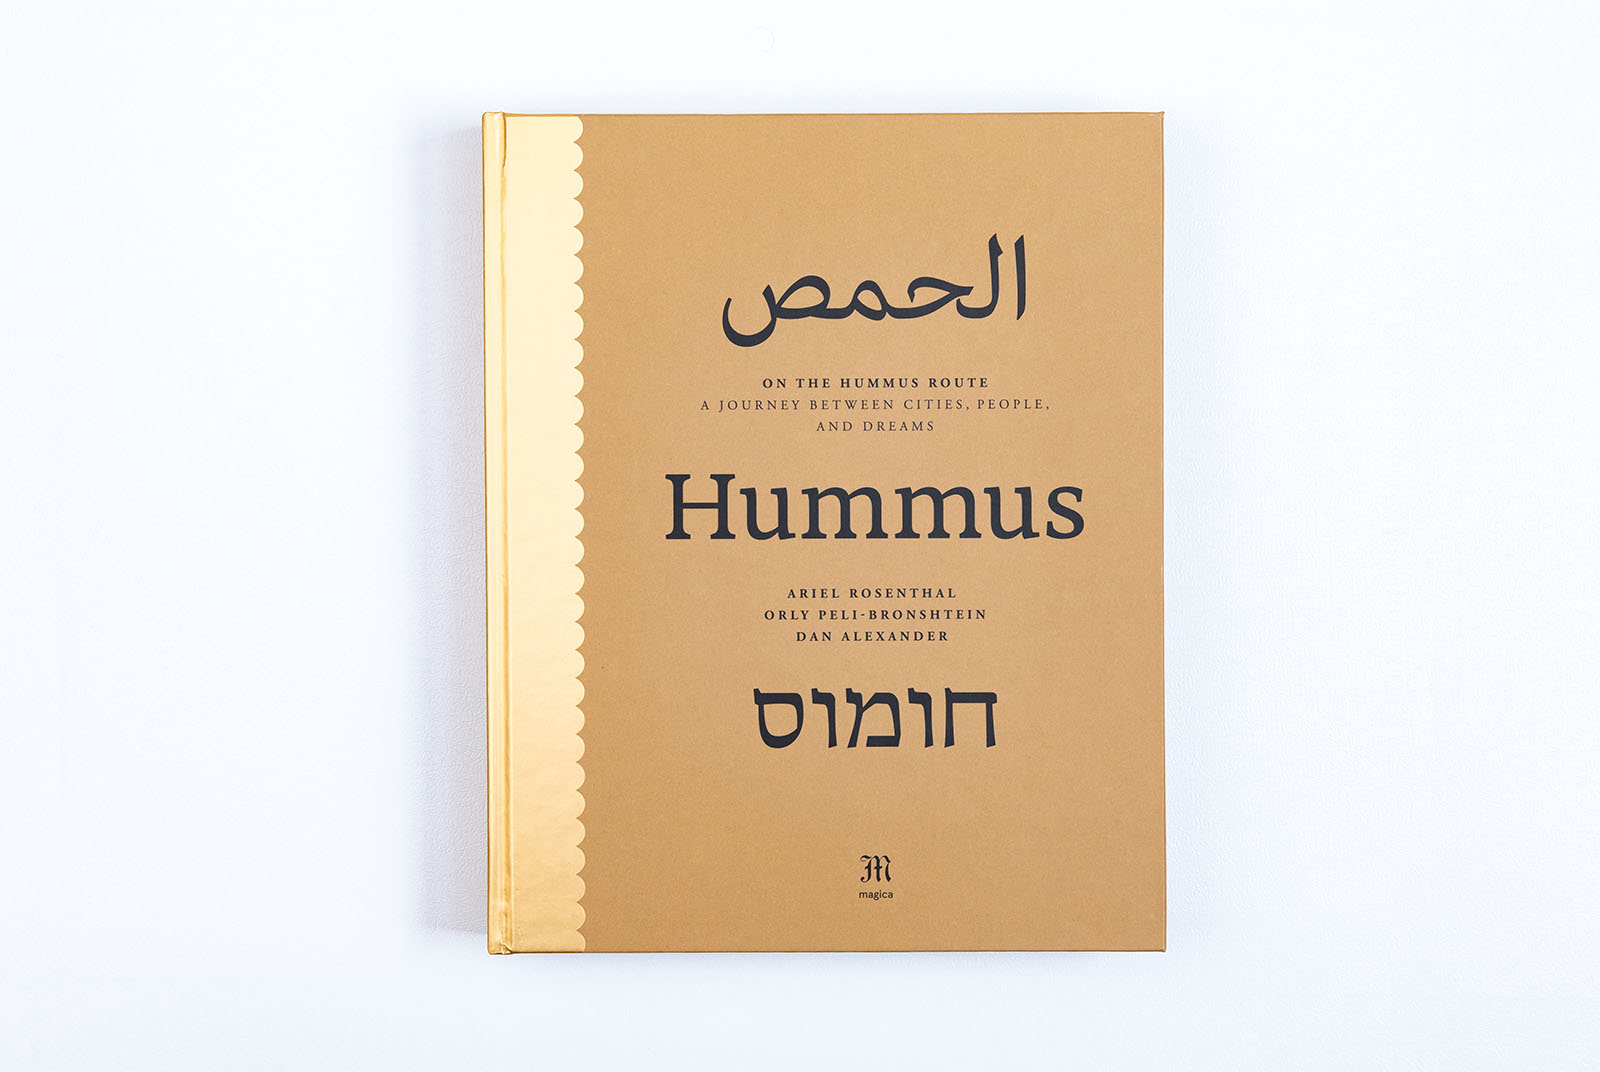 Anna-marie Ravitzki | On the Hummus Route - Book Cover French